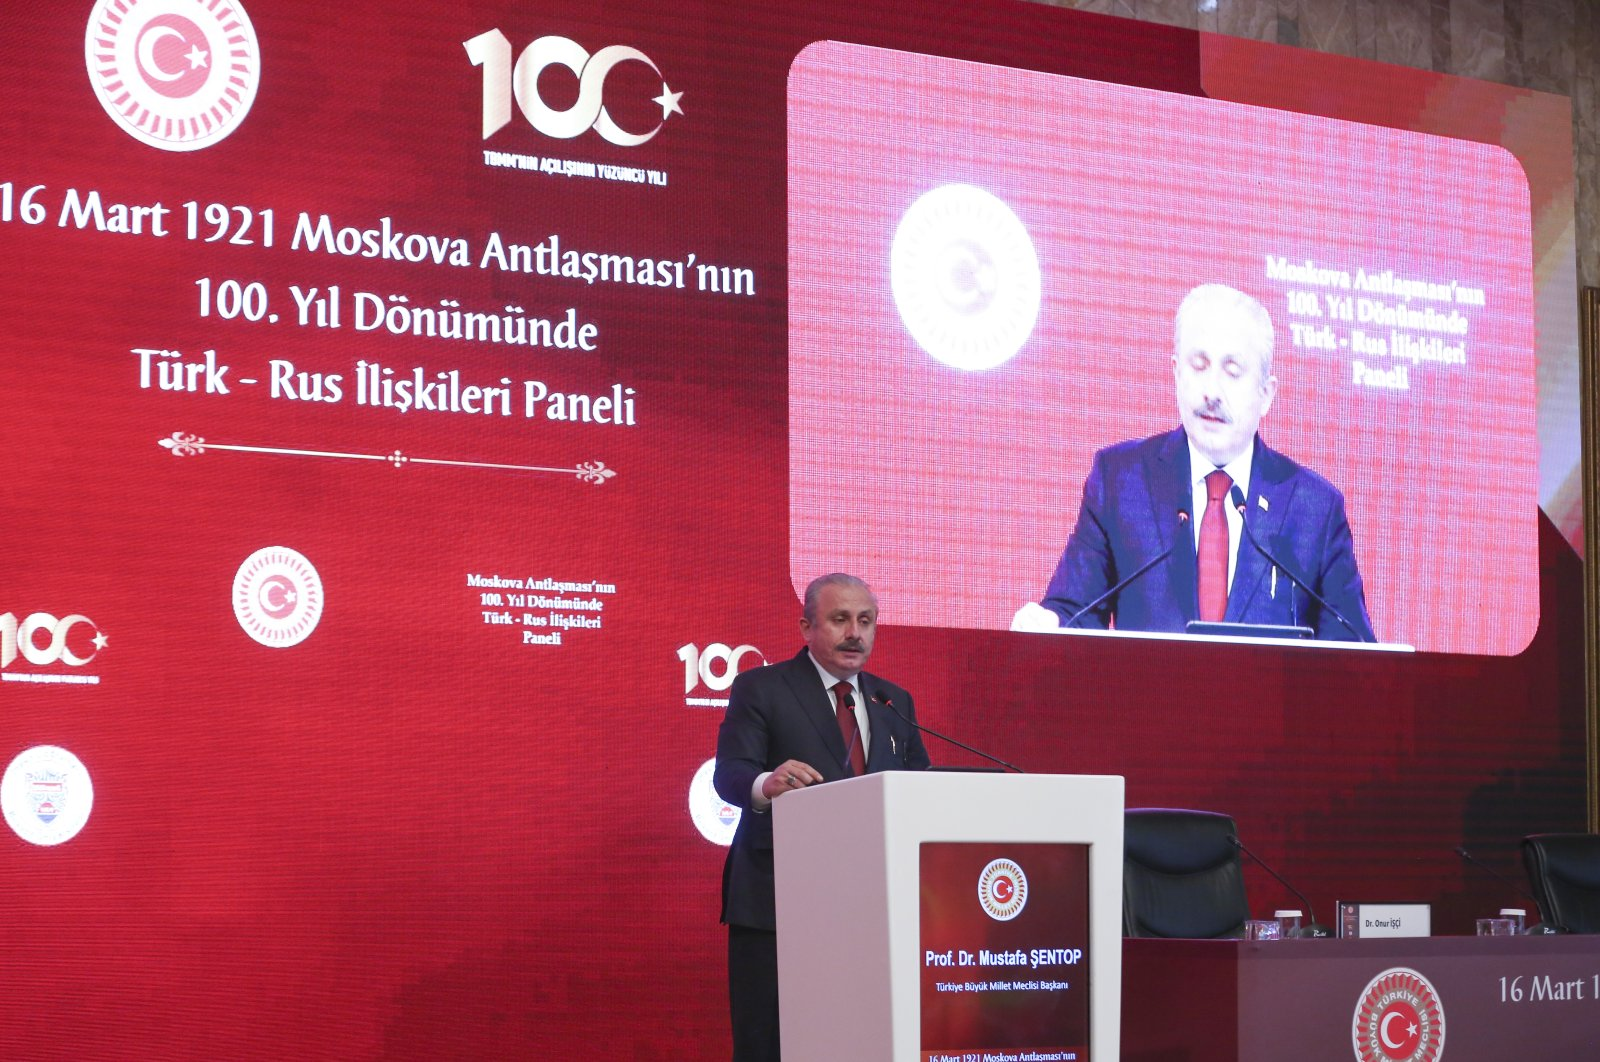 Parliament Speaker Mustafa Şentop addresses the centennial anniversary panel of the Treaty of Brotherhood, also known as the Treaty of Moscow, in the capital Ankara, Turkey, March 15, 2021. (AA Photo)